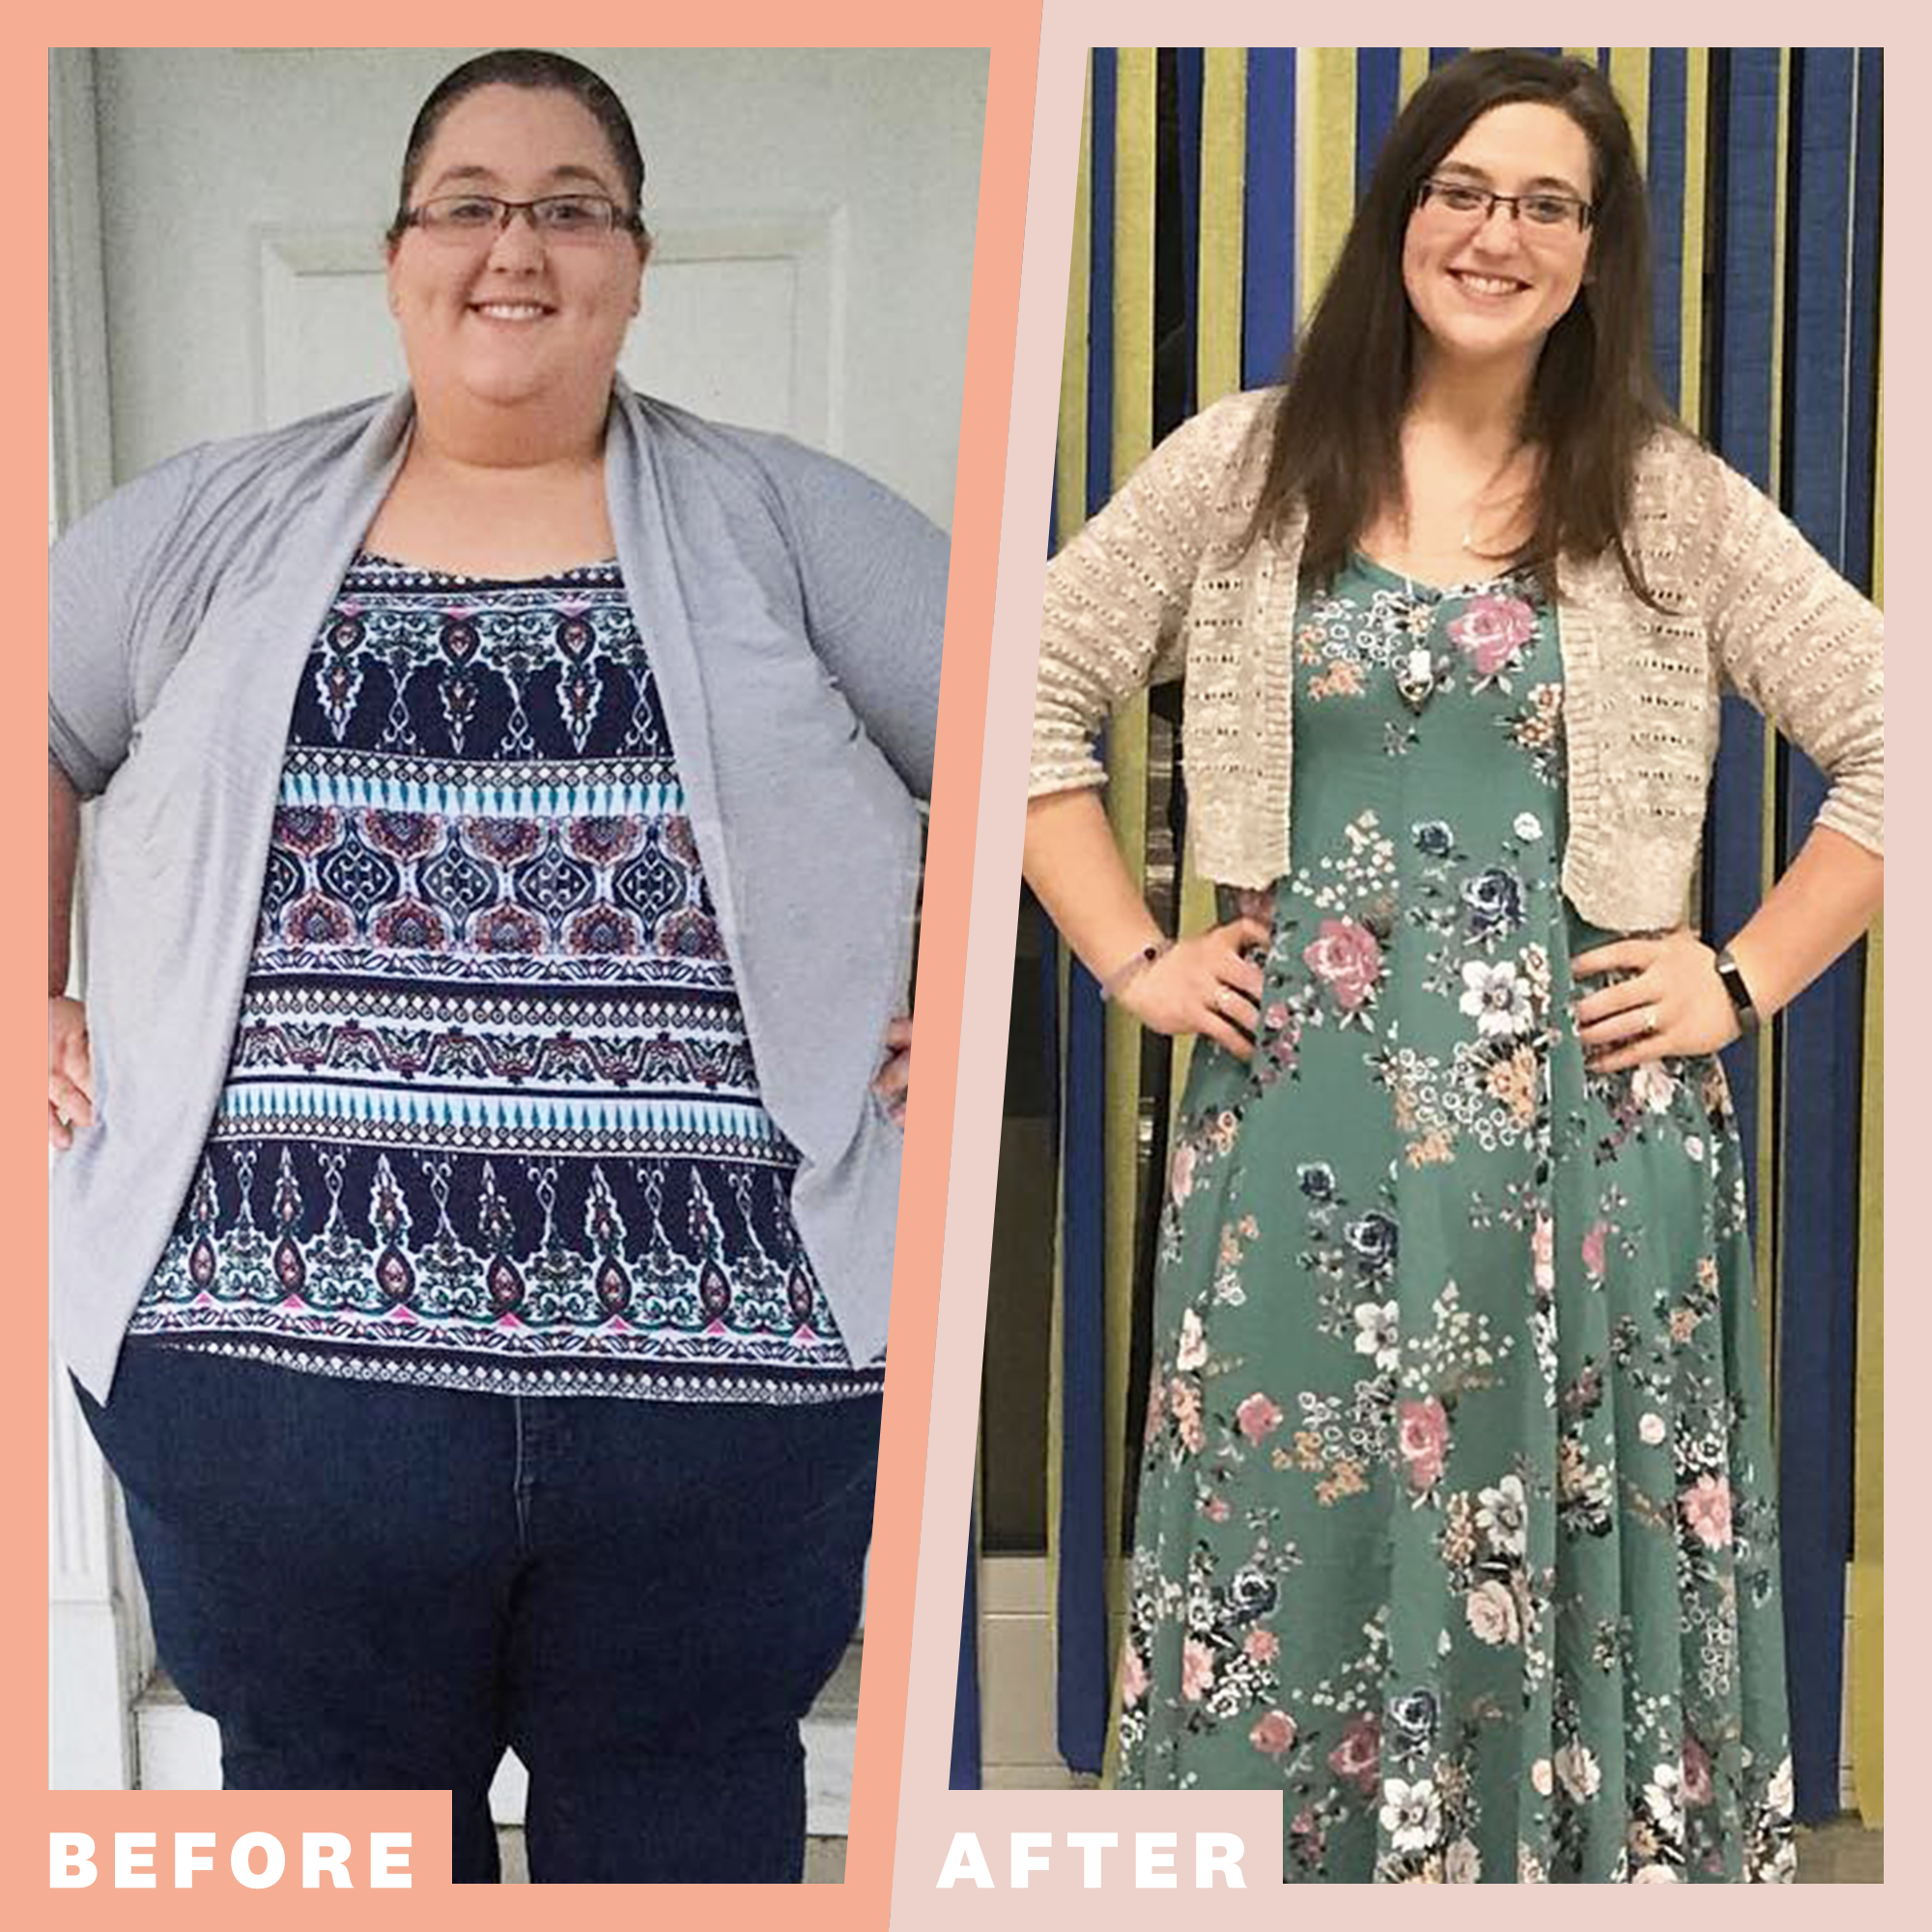 Optavia Success Story Woman Loses 330 Pounds On Optavia Program